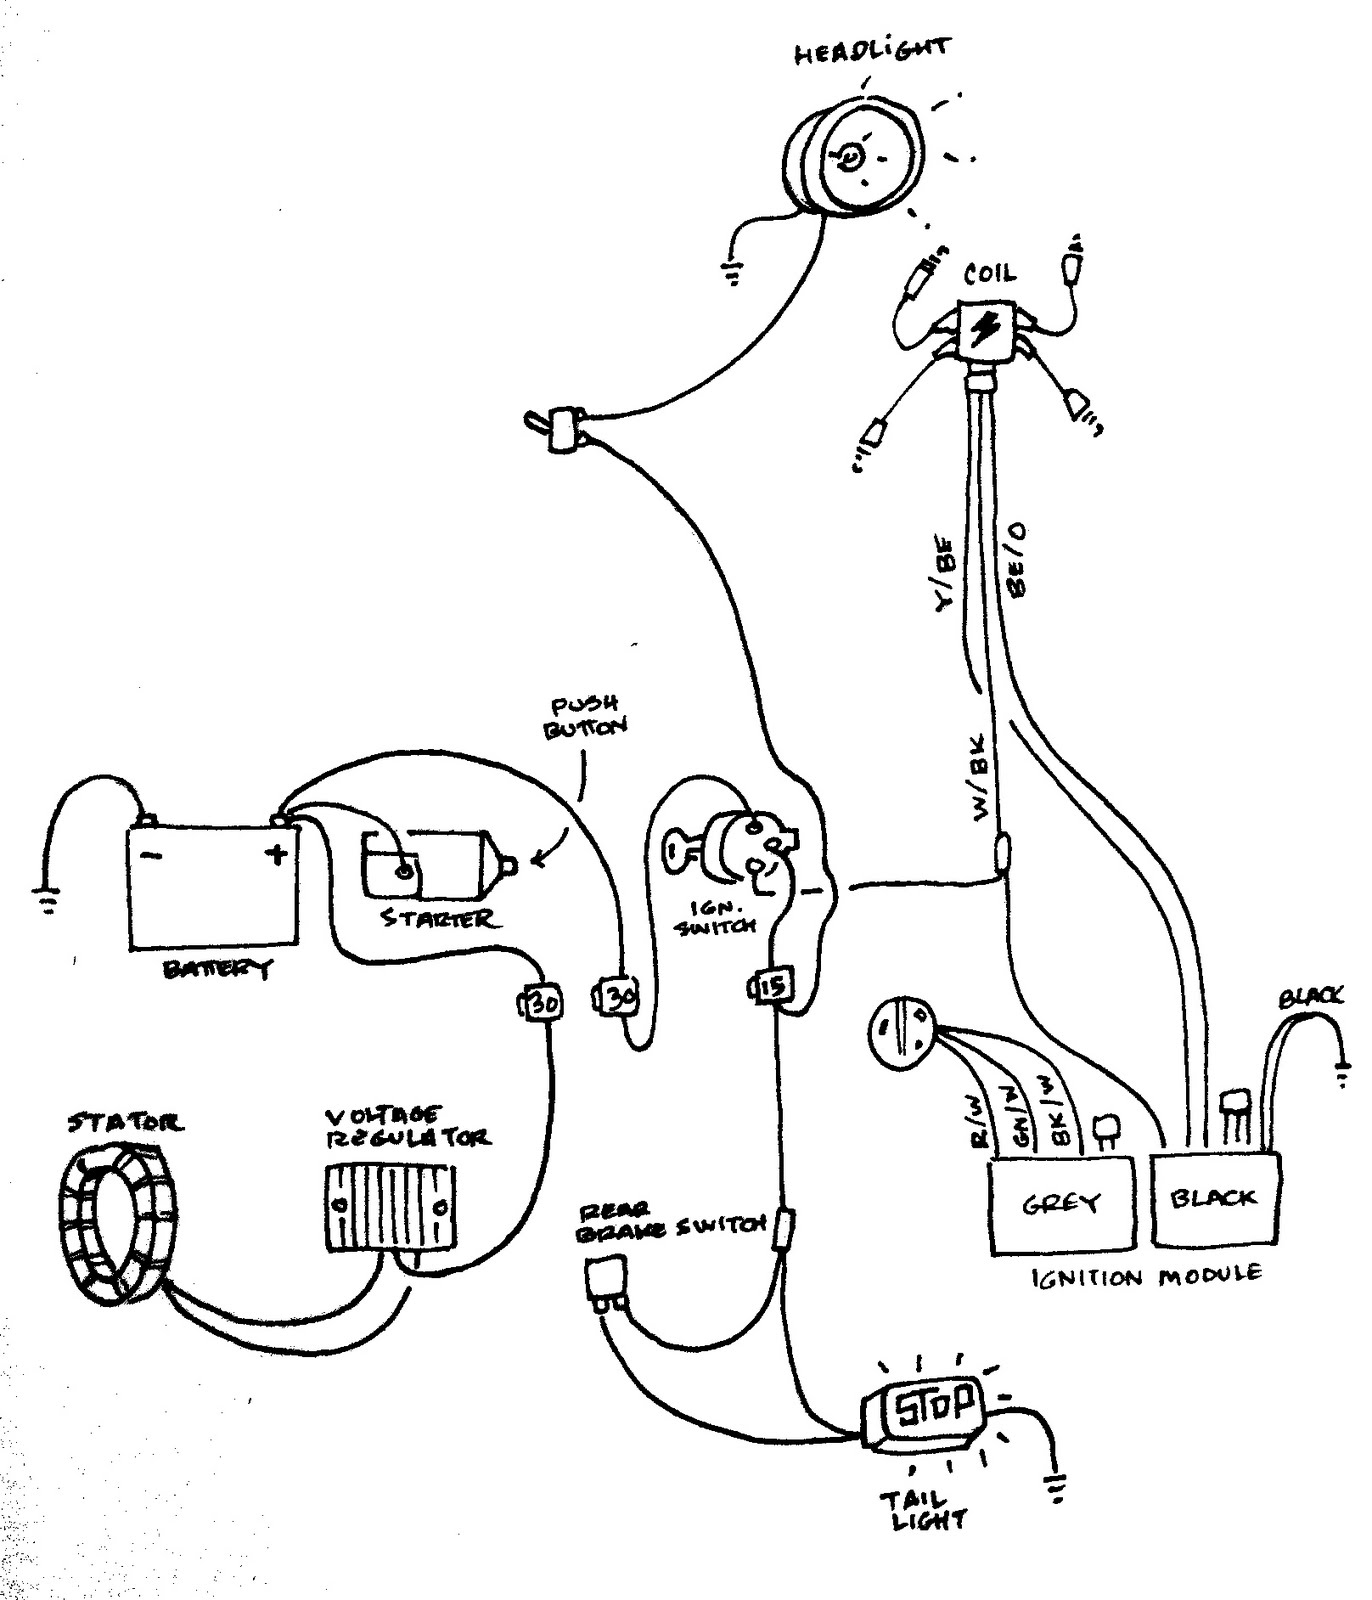 Sporty wiring how to